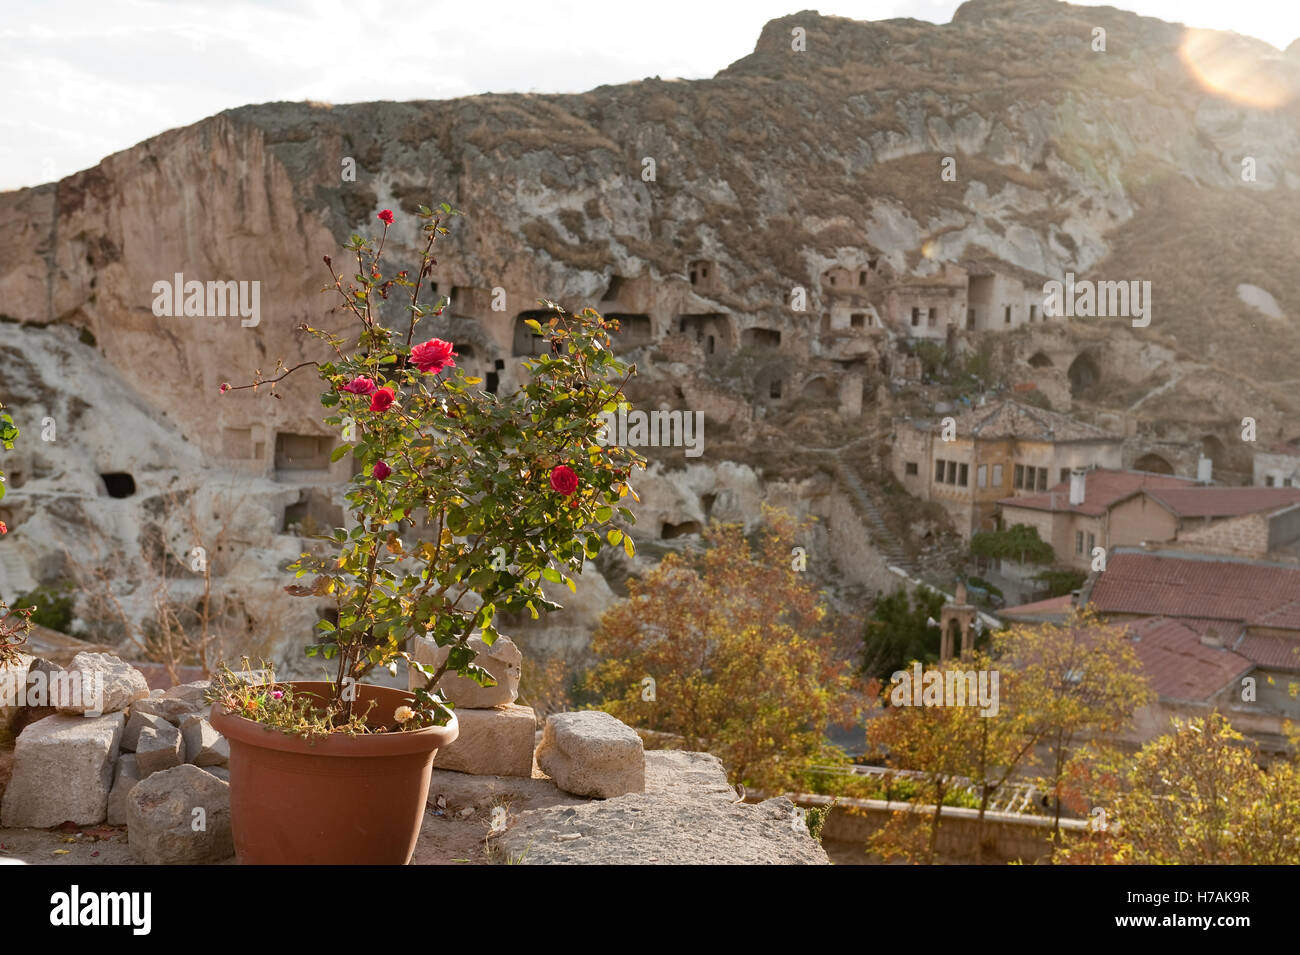 Rose on terrace of hillside in Urgup, with view of cave dwellings. Cappadocia in Nevsehir Province, Turkey - Stock Image